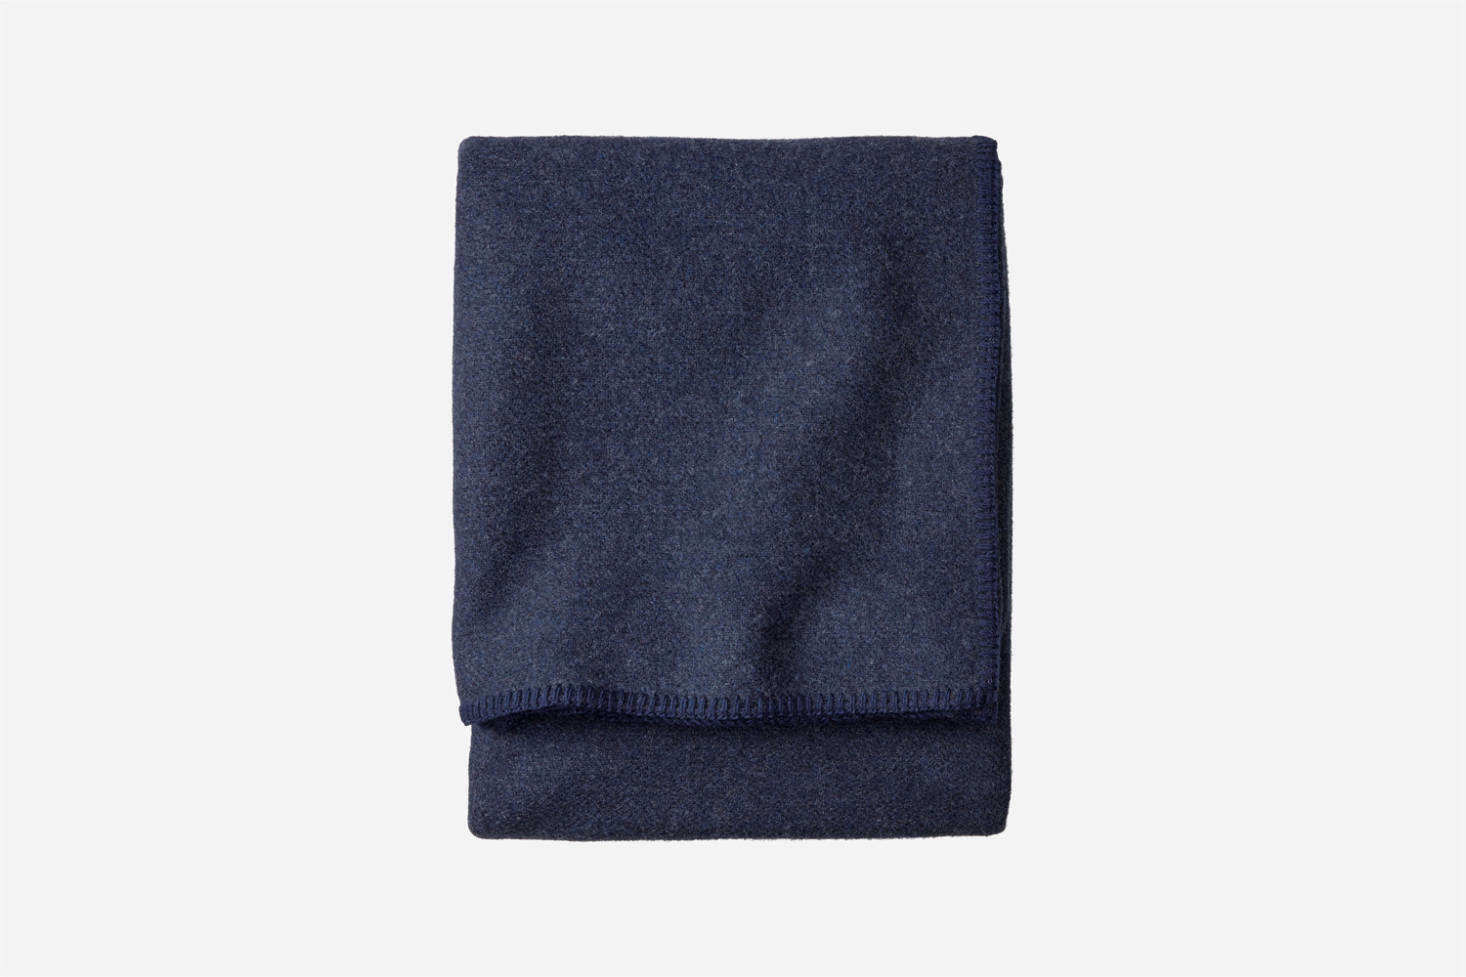 The Pendleton Eco Wise Wool Solid Blanket, shown in Navy Heather, is $